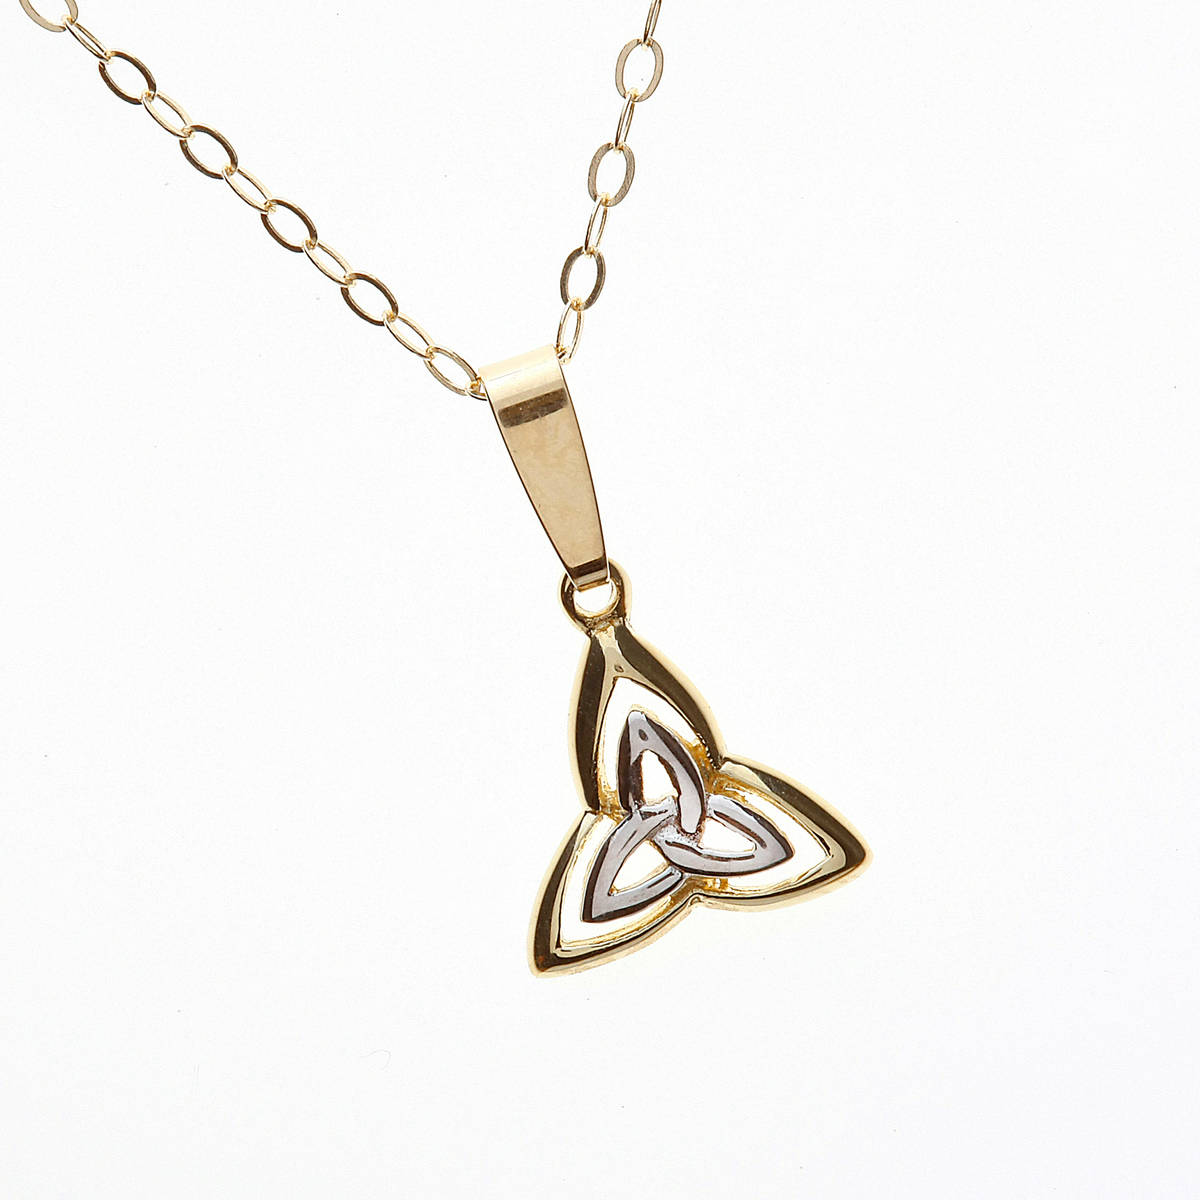 10 carat gold and rhodium plated double trinity knot pendant